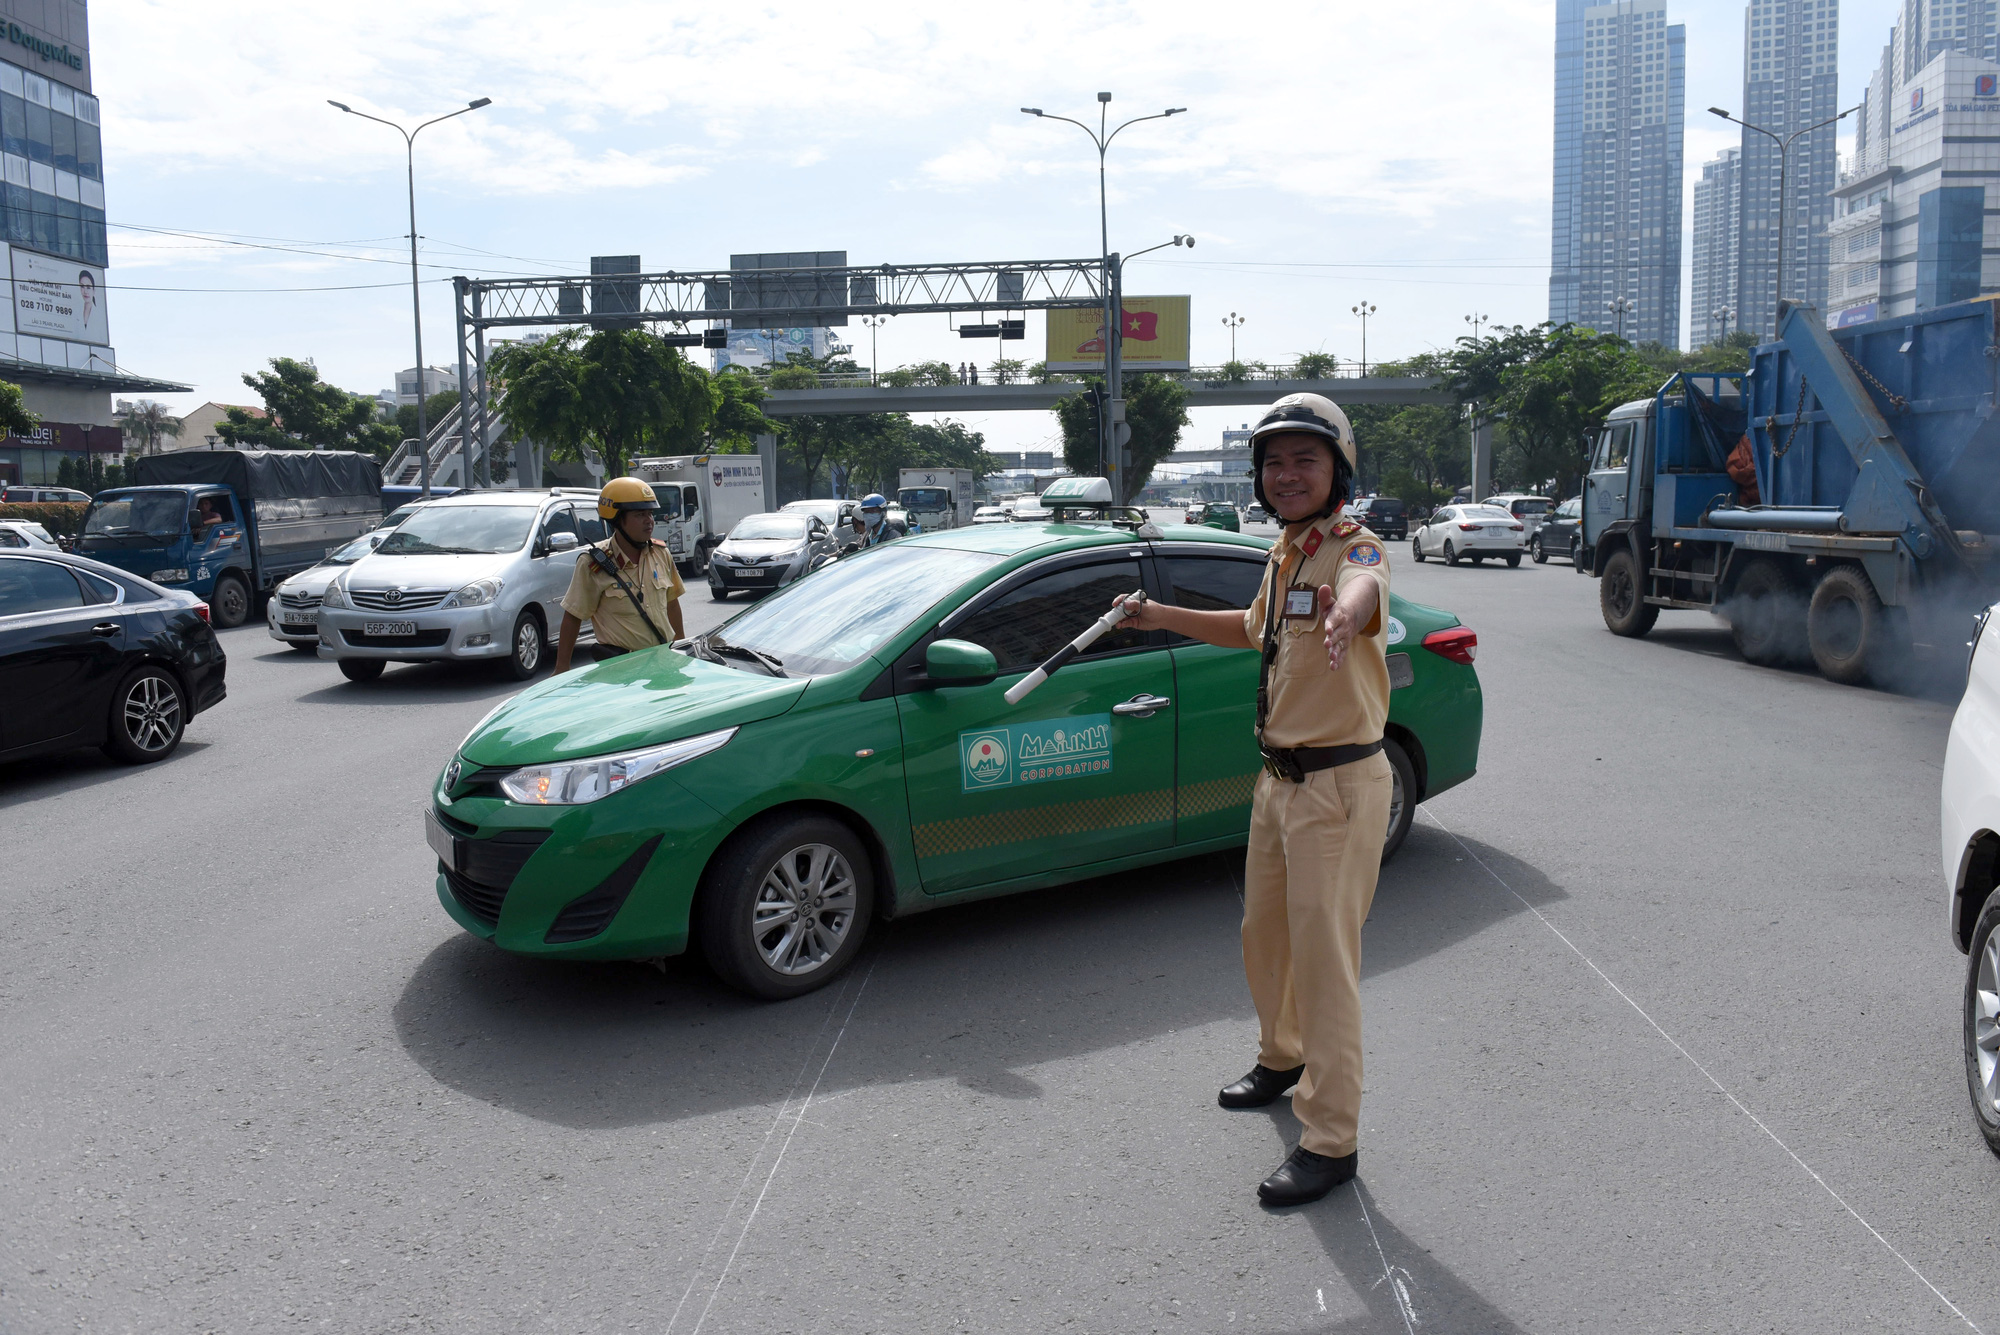 Traffic police officers regulate the flow of traffic around the Nguyen Van Thuong – Dien Bien Phu intersection in Binh Thanh District, Ho Chi Minh City. Photo: Le Phan / Tuoi Tre